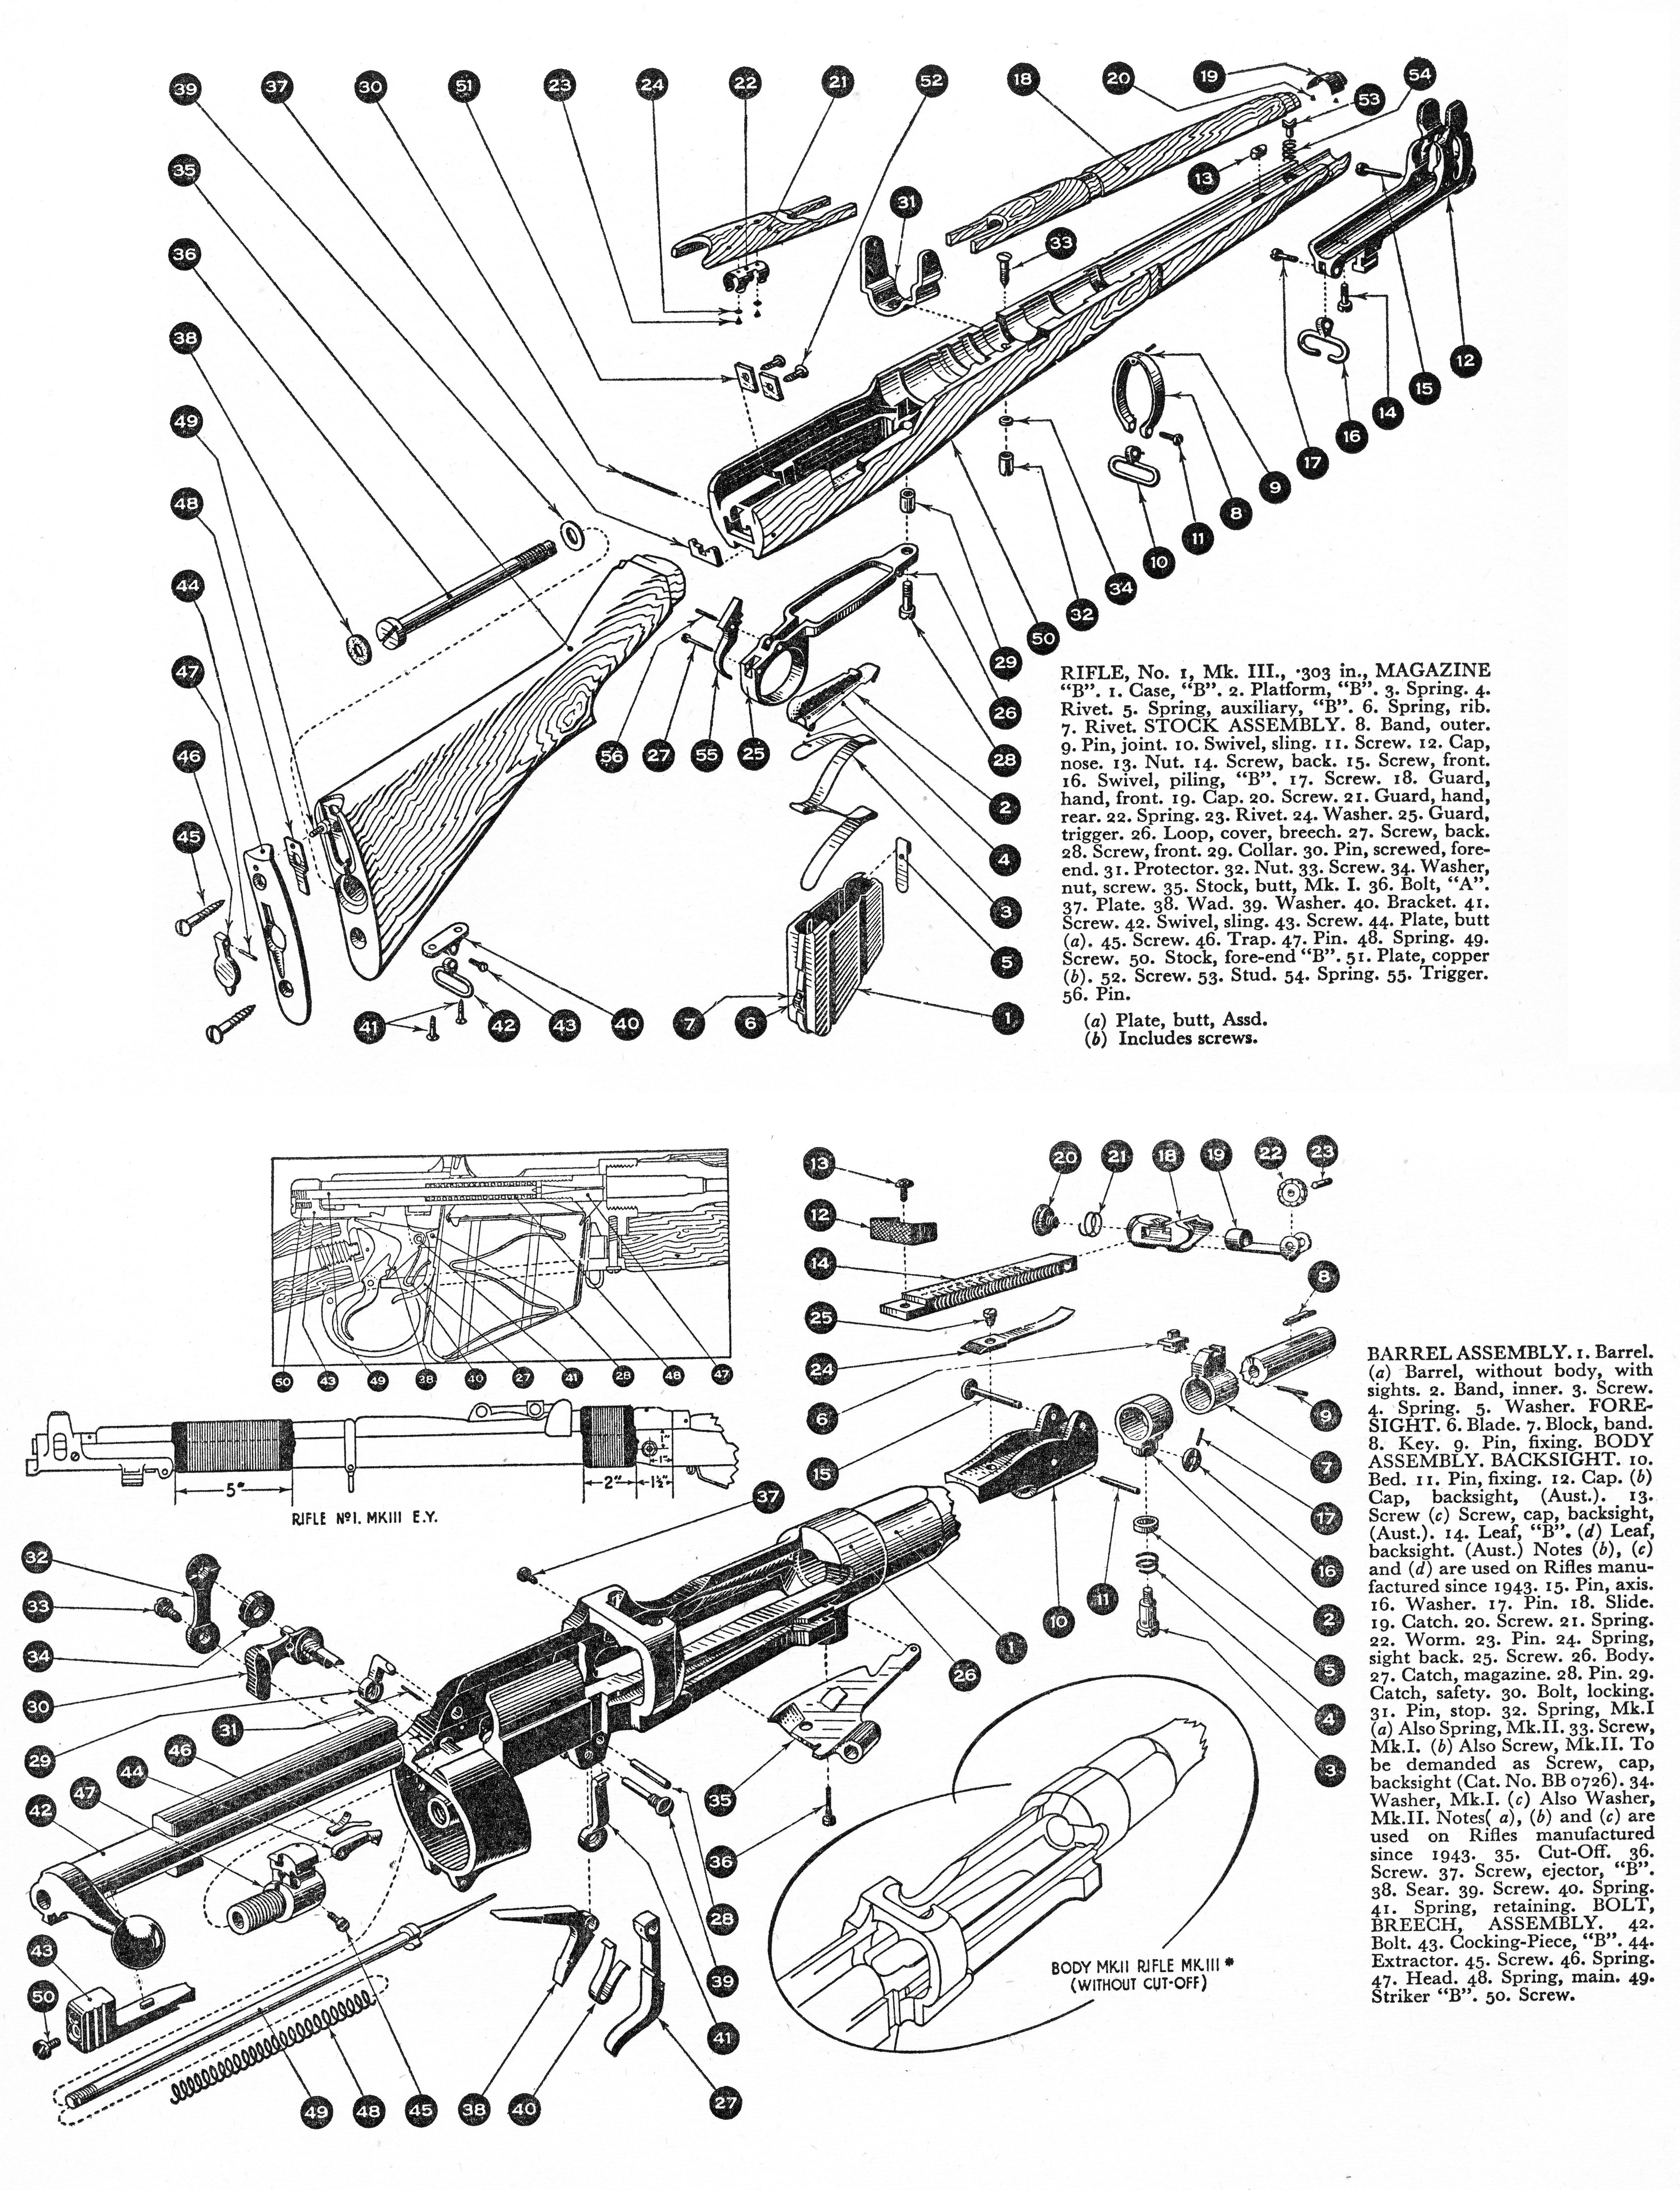 hight resolution of detailed parts diagram of rifle no 1 mkiii smle 303in with cut off